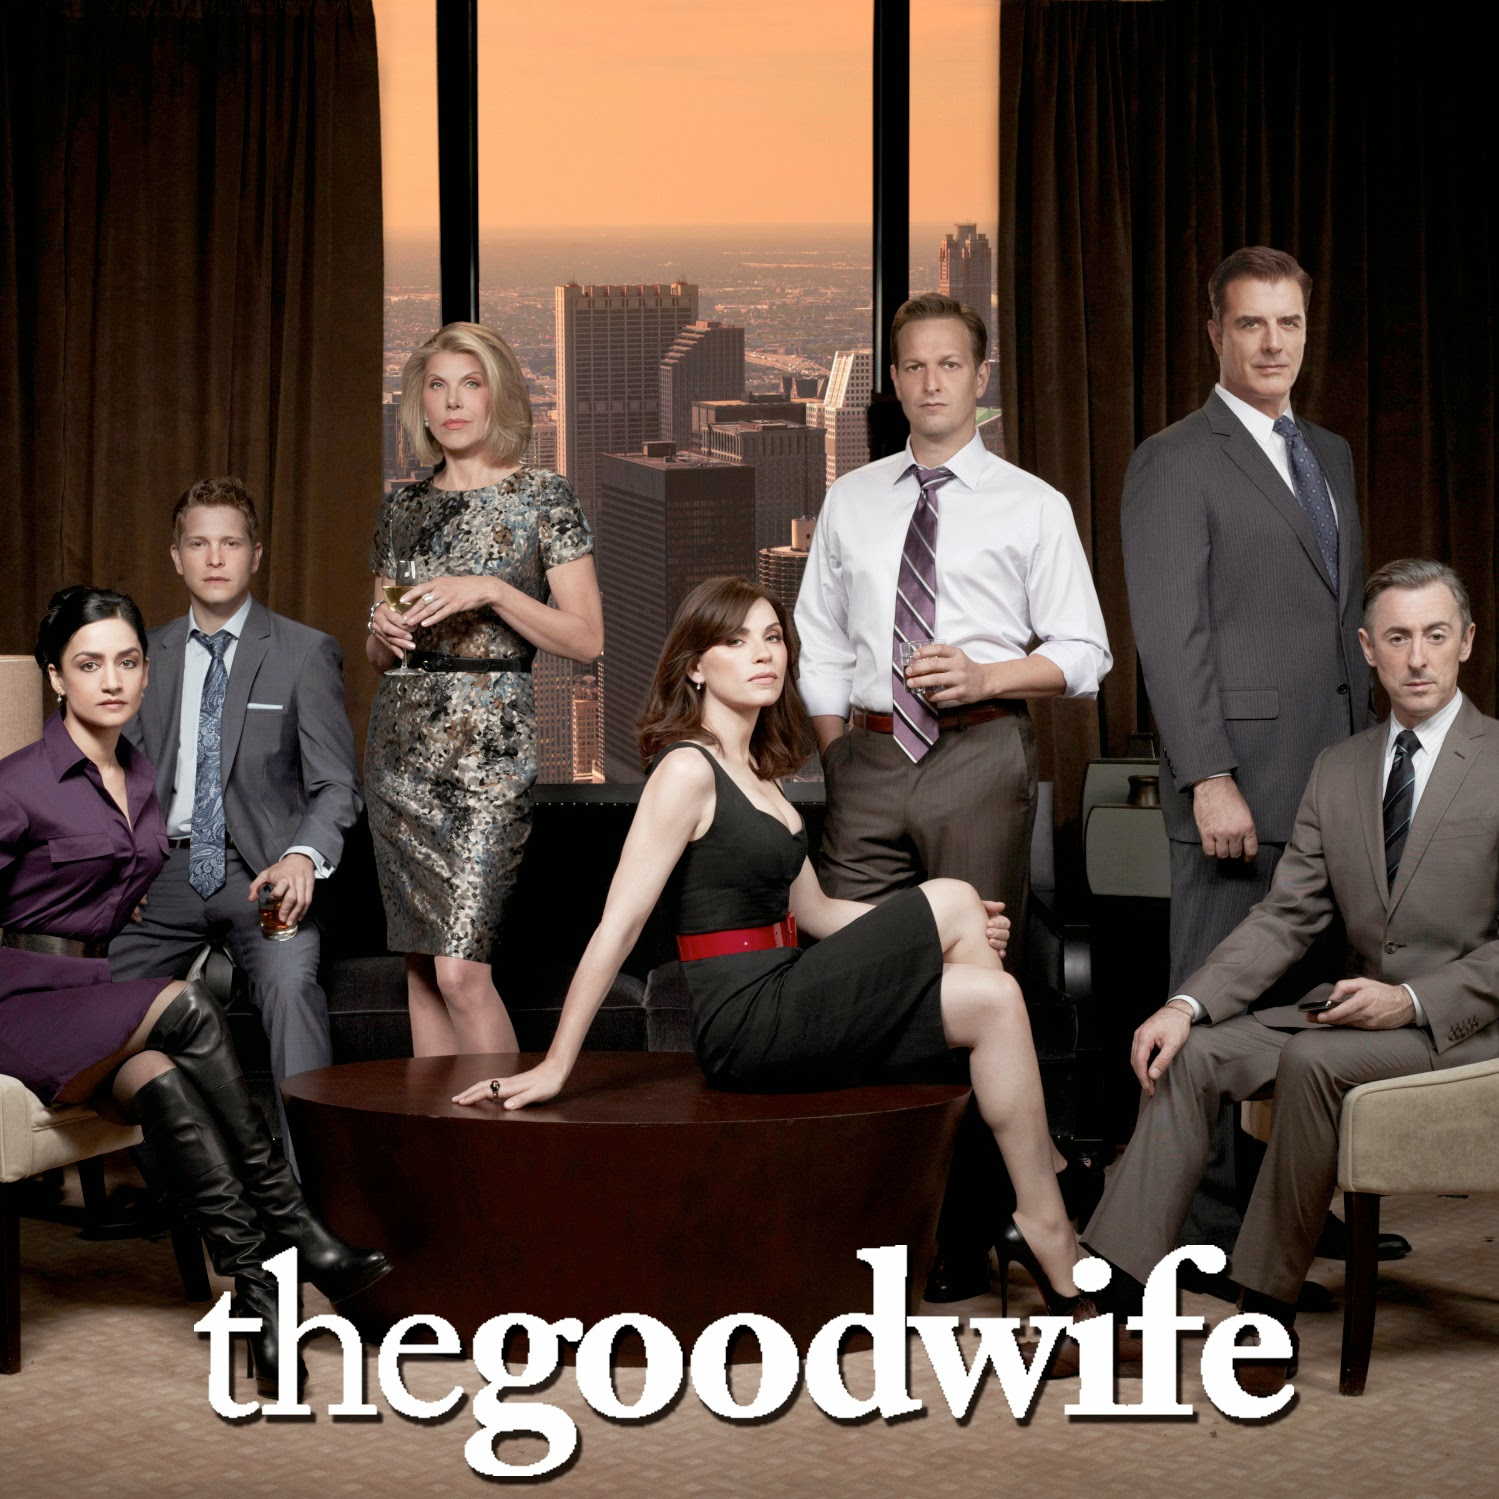 splendid sass vincente wolf for julianna margulies the good wife